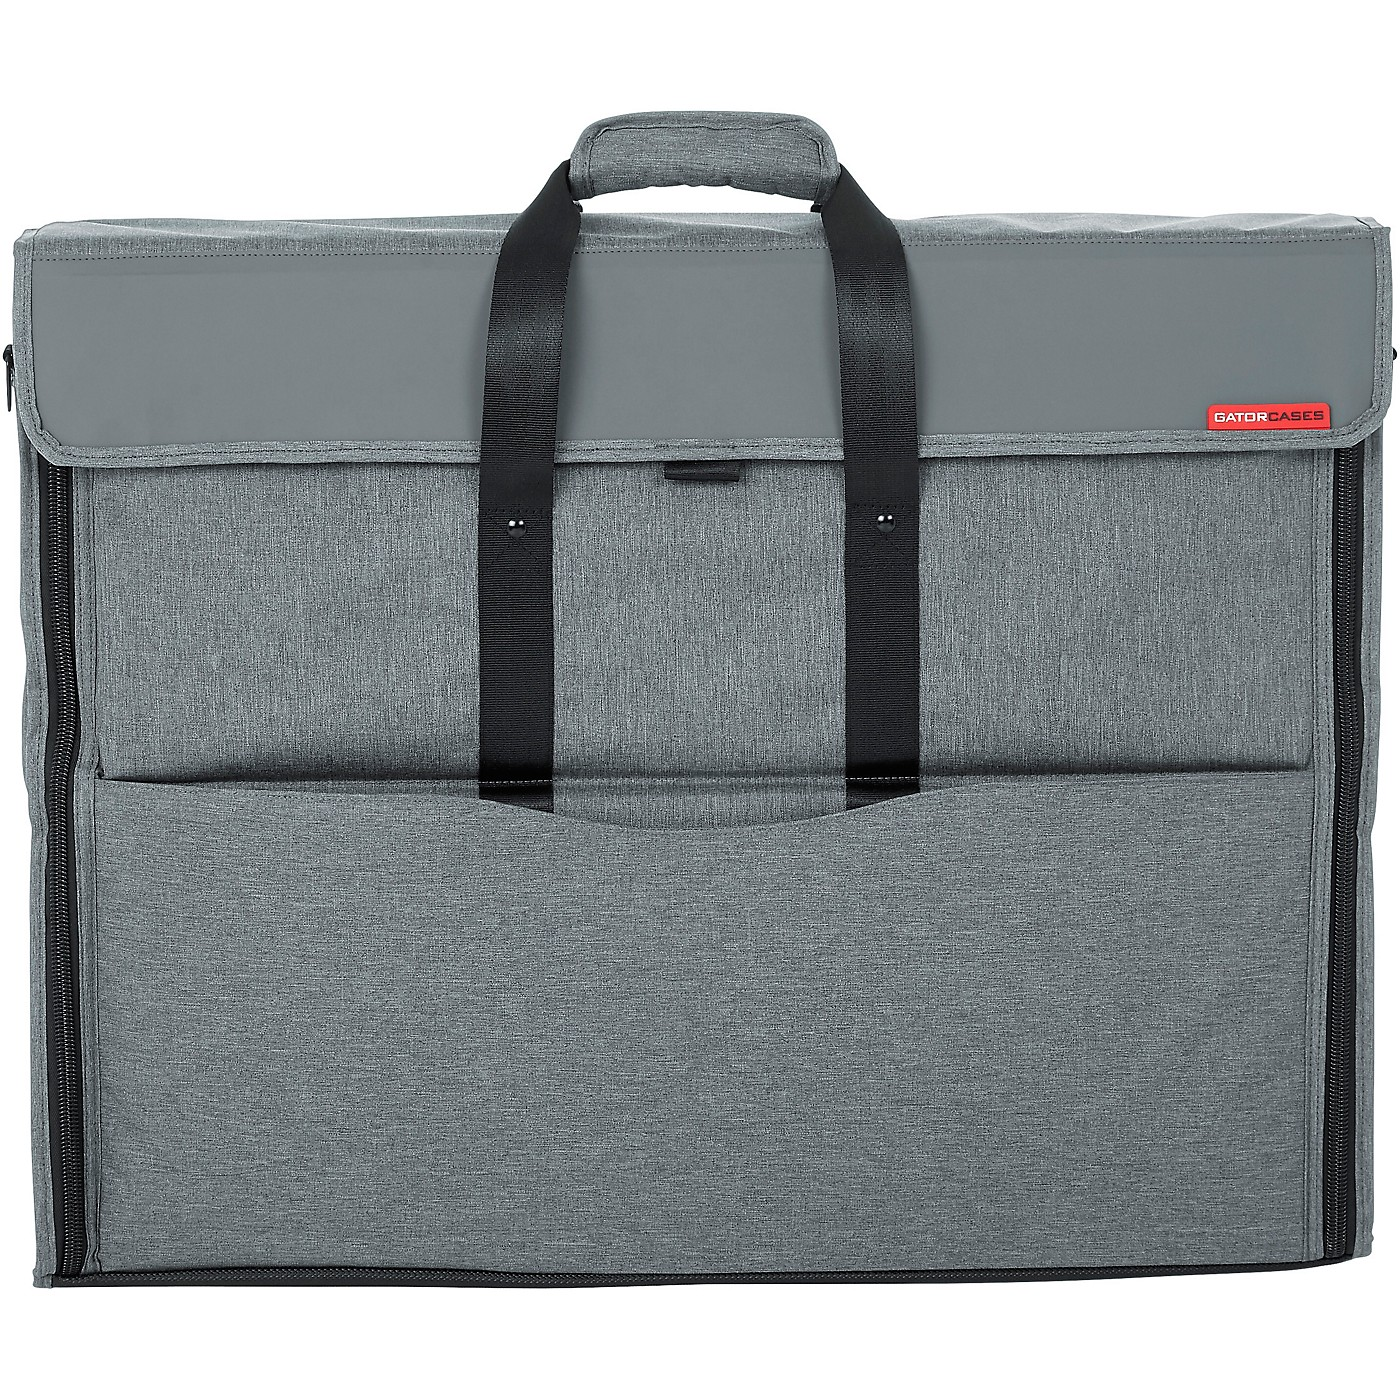 Gator G-CPR-IM27 Creative Pro Padded Nylon Tote Bag for Transporting 27